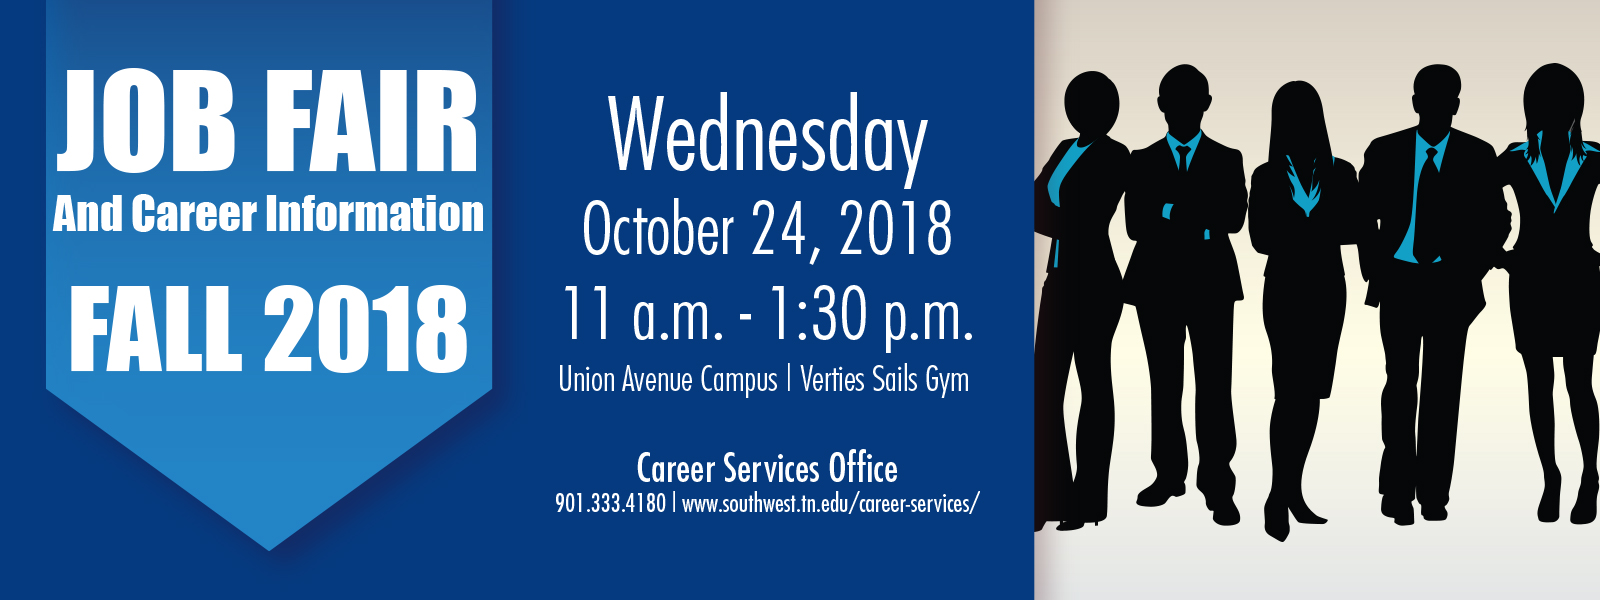 Southwest Career Fair October 24 at Macon Cove Campus.